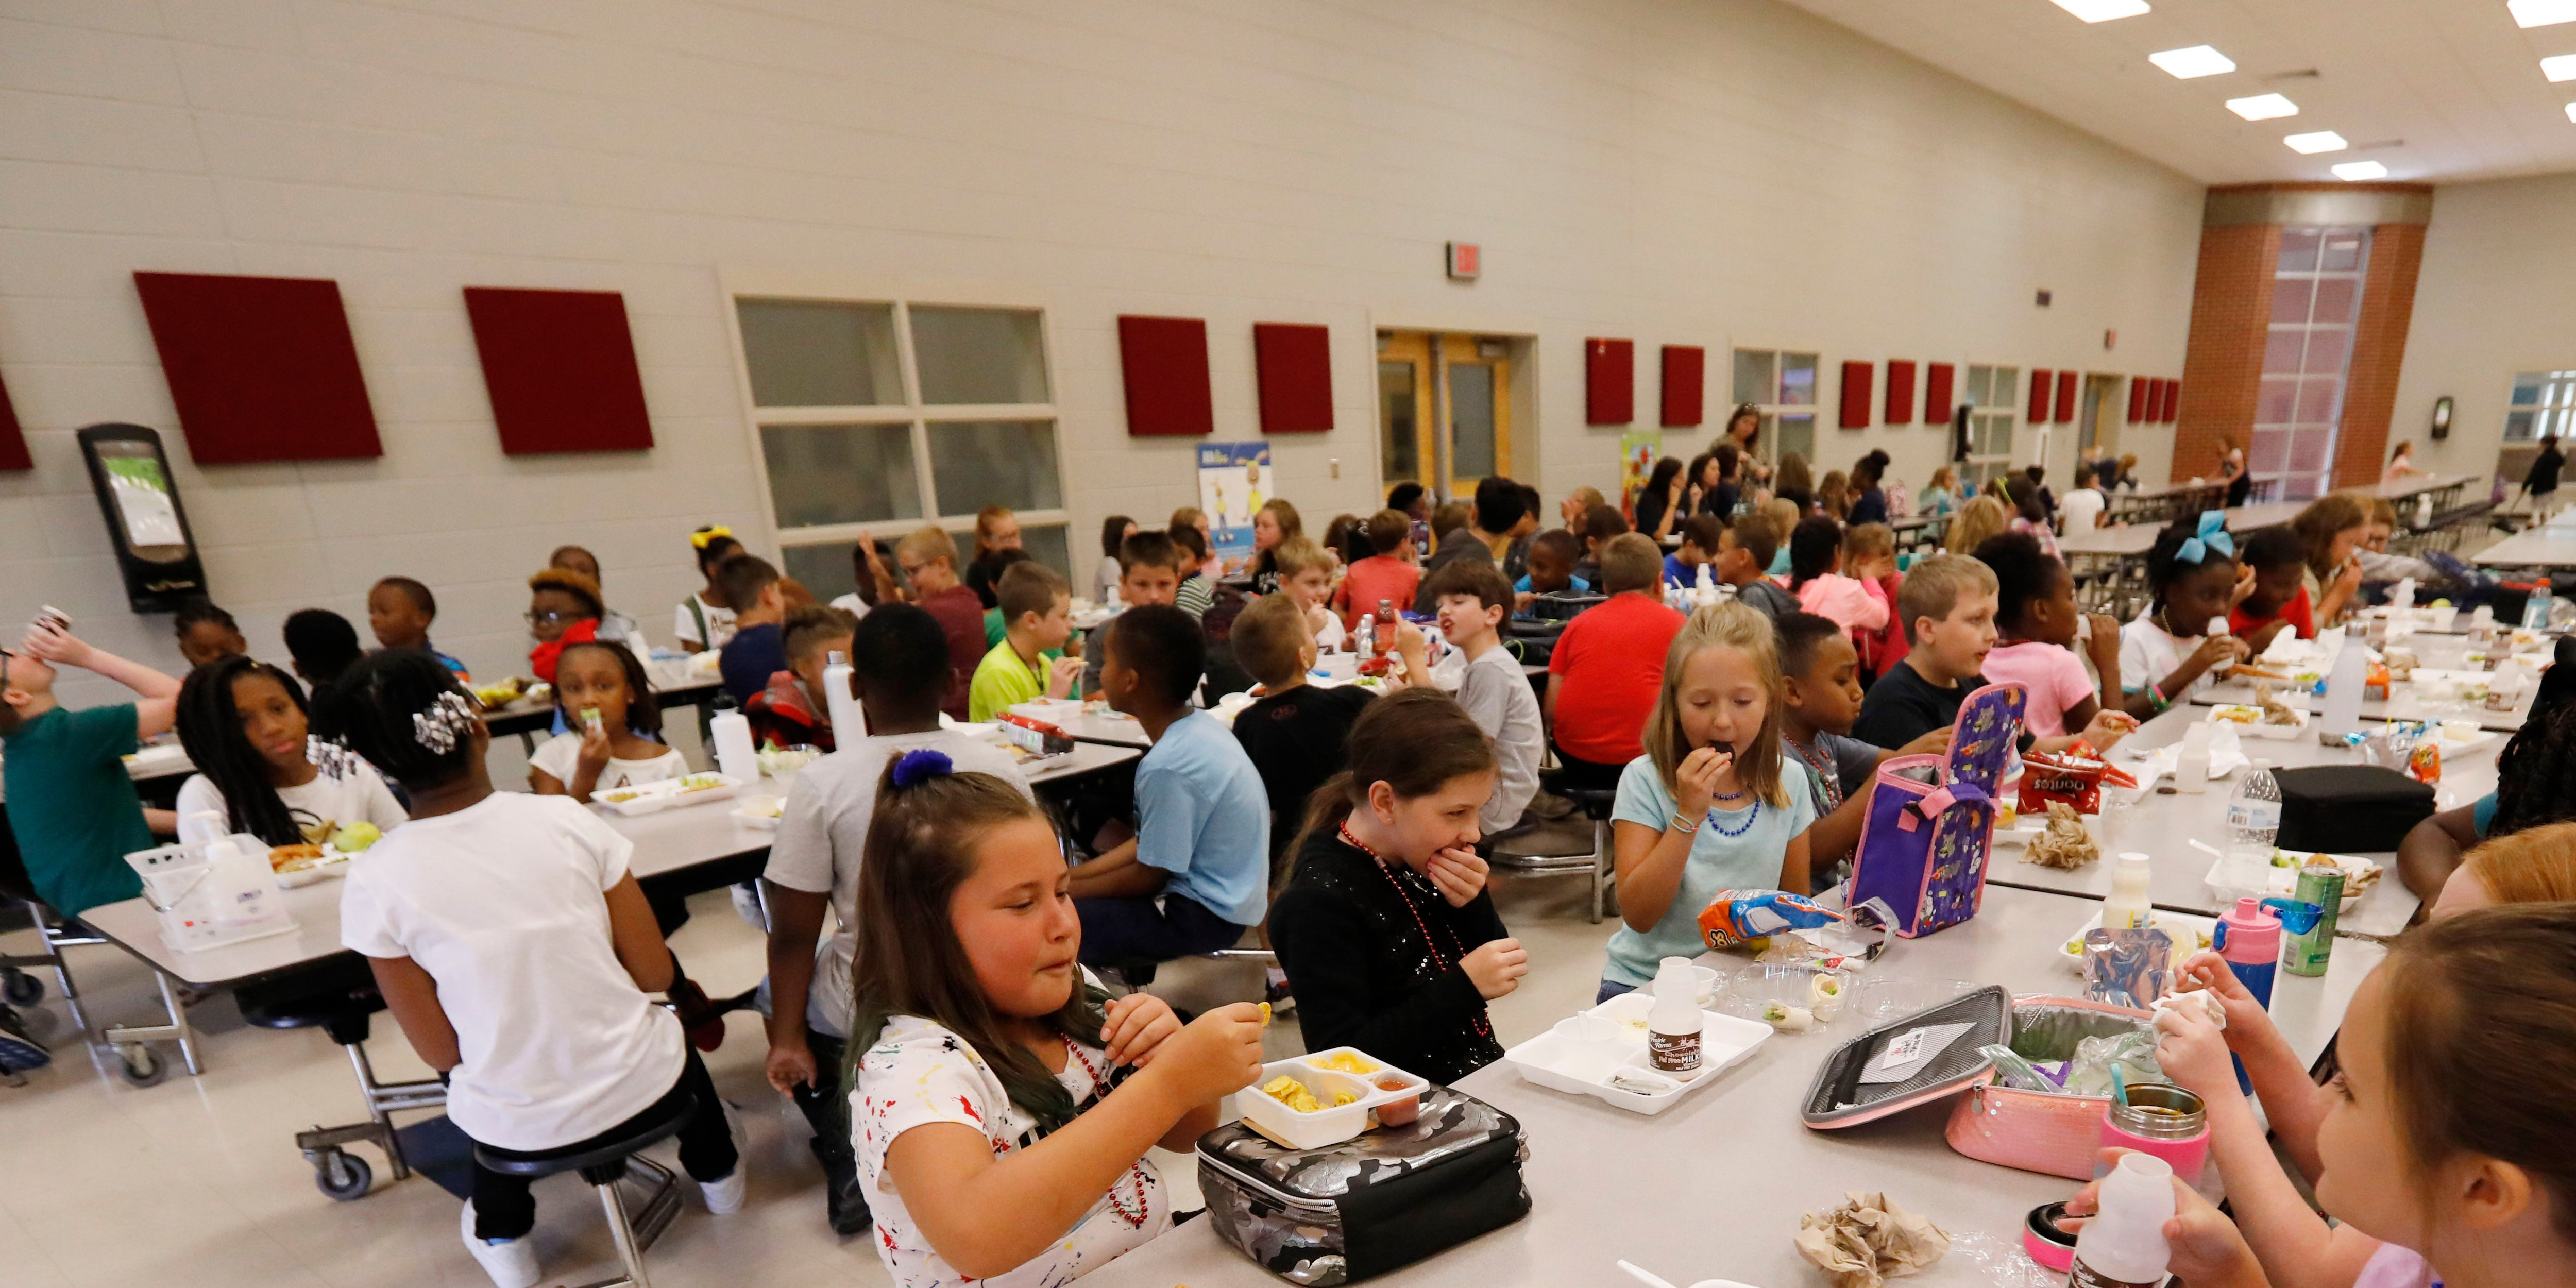 What's on school menus this fall? More than $1 billion worth of 'free' food because of trade disputes